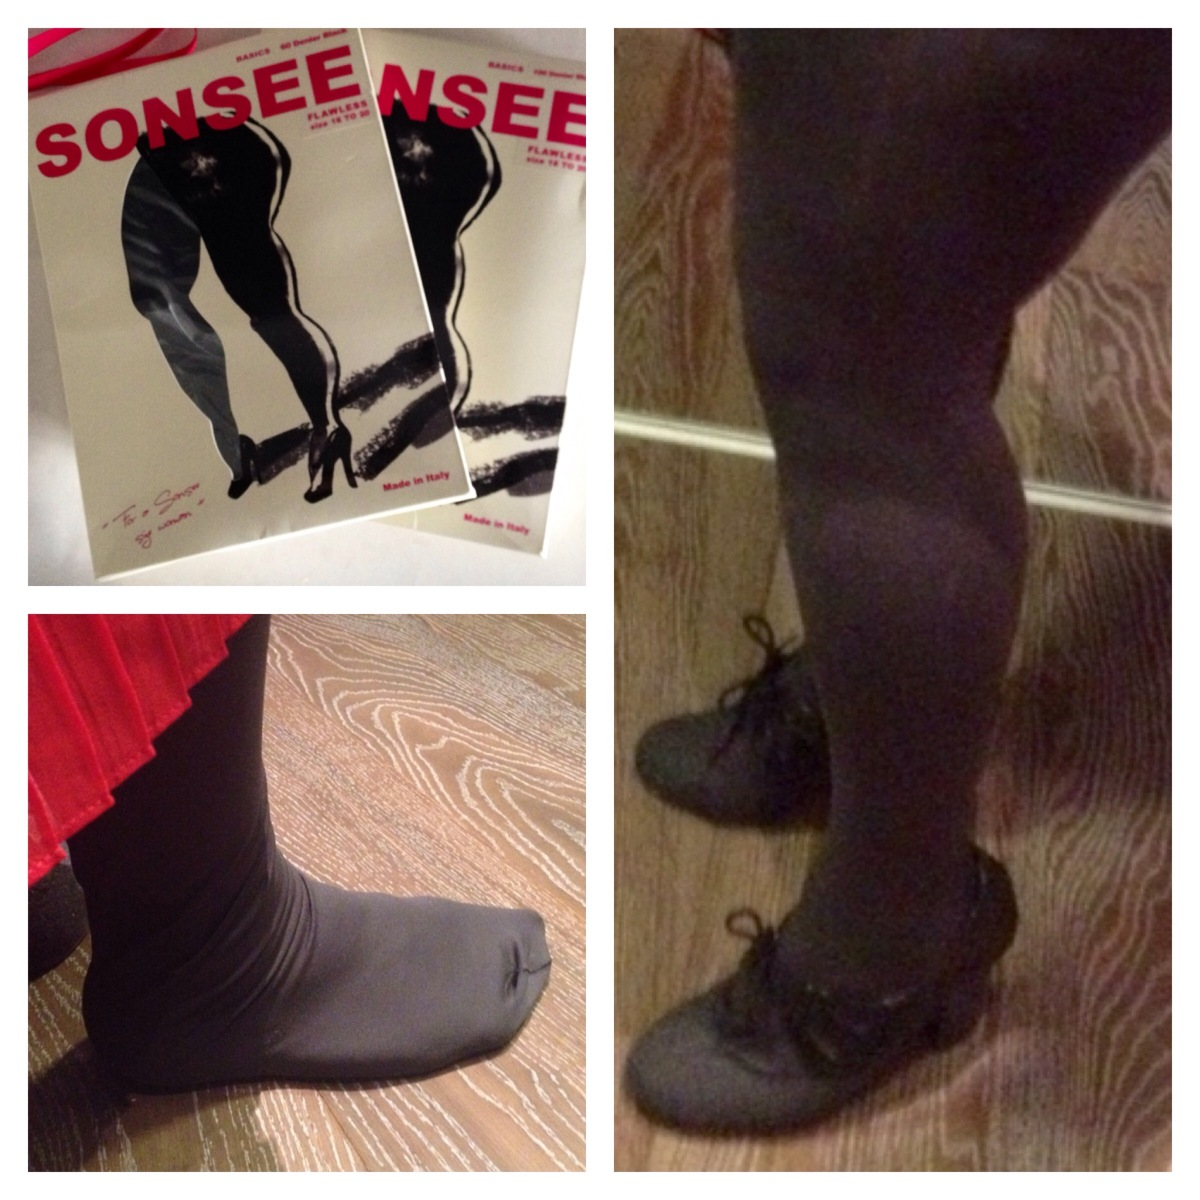 SONSEE Woman - Product Review